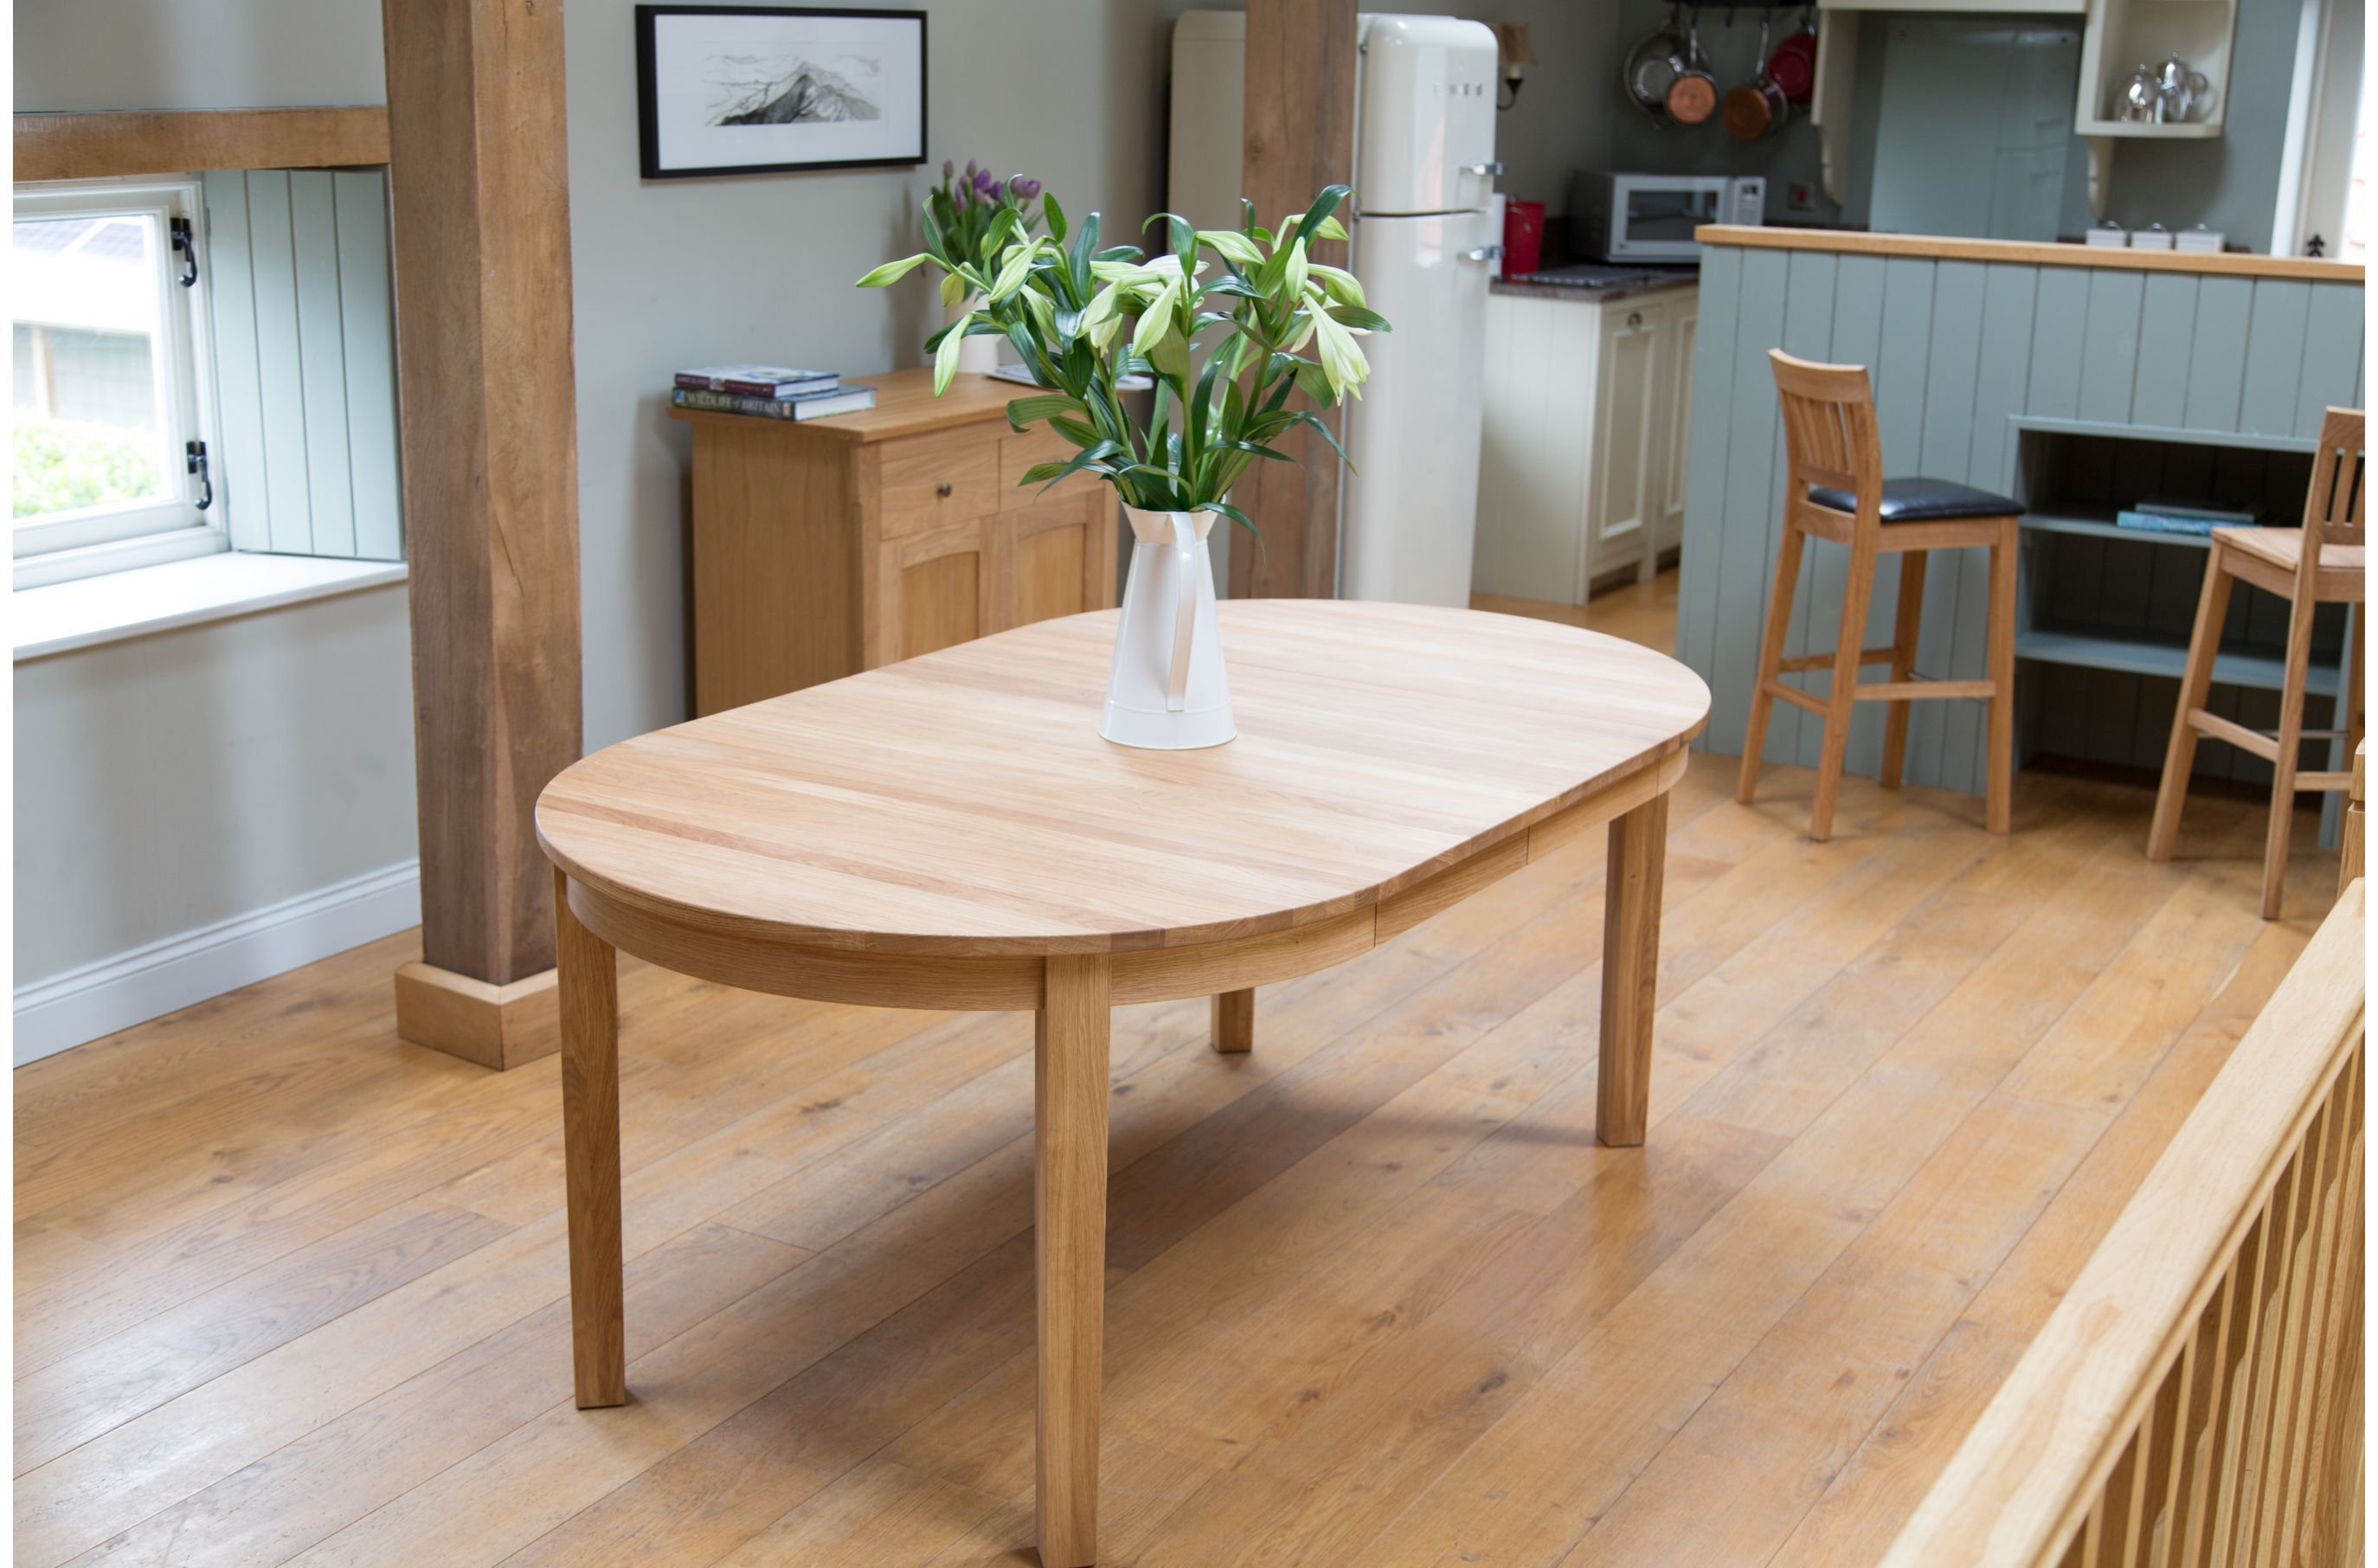 Furniture, Simple Natural Wooden Expanding Dining Table For Wooden Open  Kitchen Design And Decoration Ideas ~ Attractive Expanding Dining Tables  For Room ... Idea